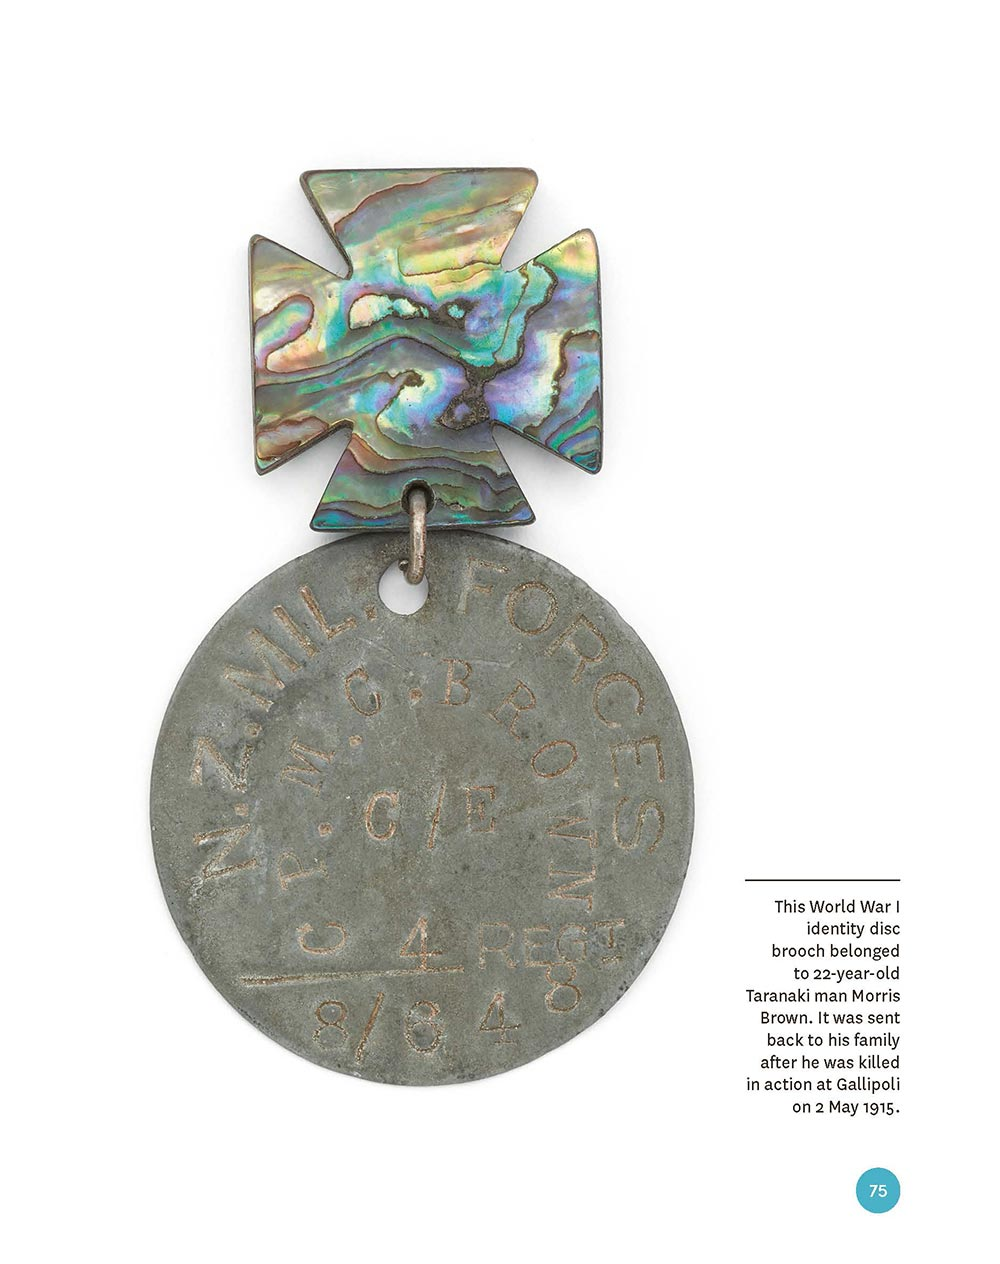 Paua cross and identity disc